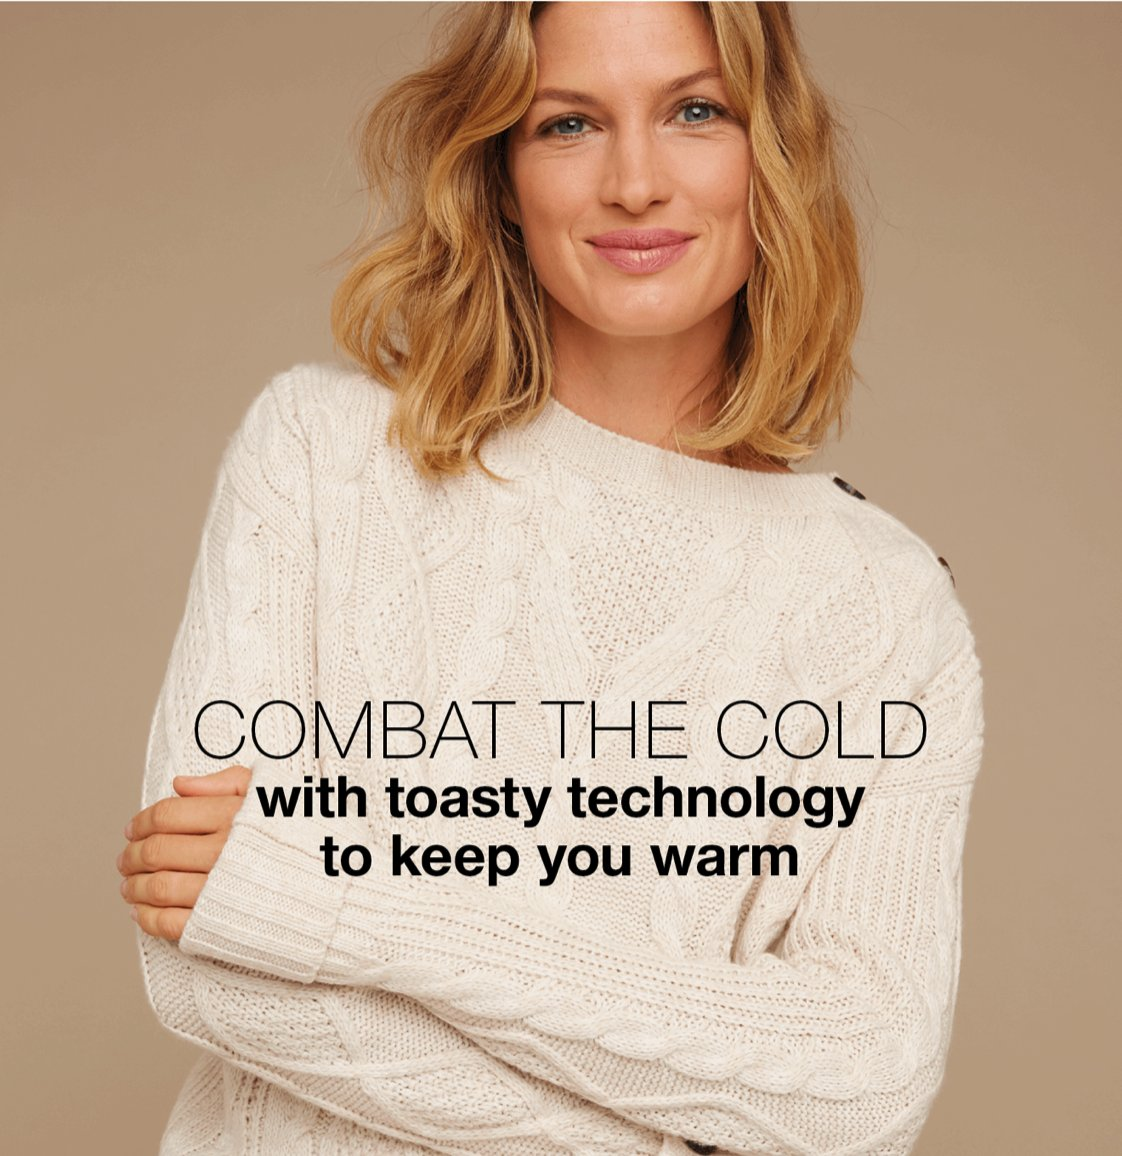 Combat the cold! Toasty tops and cosy cardigans. Shop our thermal range and wave goodbye to the chill! Wrap Up Warm: bit.ly/3sldsAU